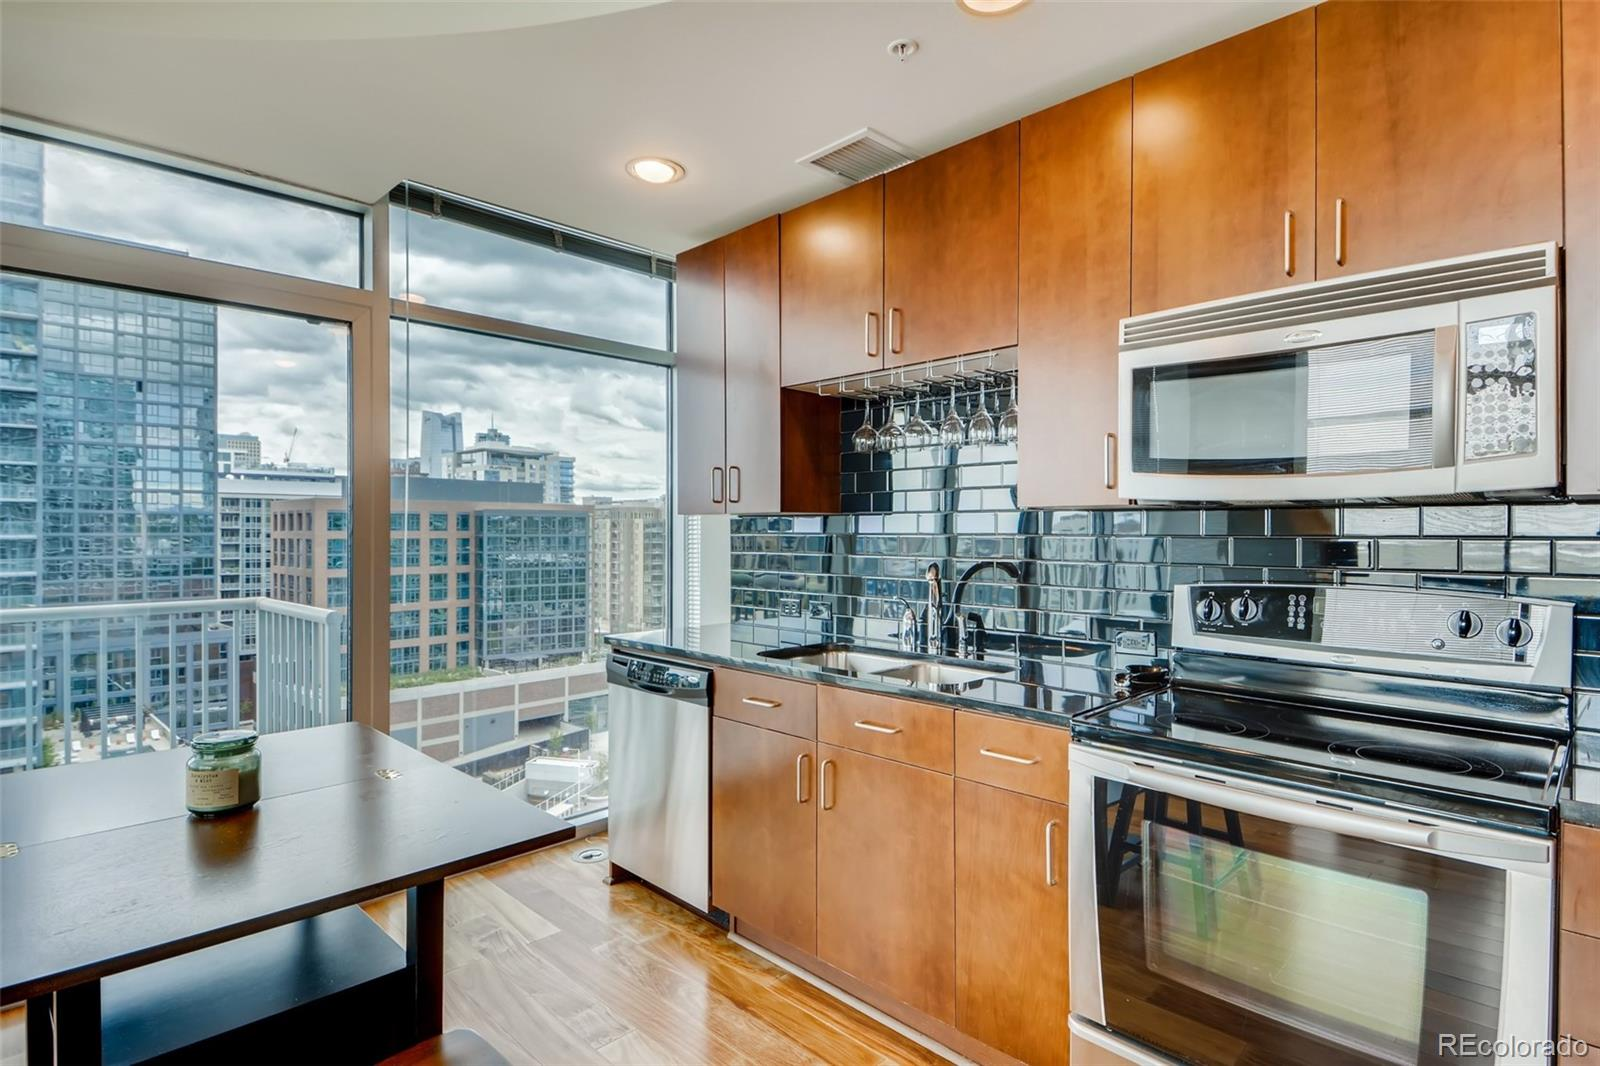 This beautiful Glass House Condo located in the desirable Riverfront Park neighborhood, is the perfect place to call home. The location is second to none with excellent walkability to the best restaurants, bars, grocery stores and shops in Denver. The open floor plan is the perfect place to entertain friends and family and you can impress them with the gorgeous views of Downtown and the mountains from your balcony. The Glass House has the best amenities in town with a secure entrance, 24 hour concierge, a complimentary continental breakfast on Saturday and Sunday's, Exterior window washing, maintenance staff to help with all of your needs, and so much more. Make sure to check out the fitness center, pool, business center, and year round access to the gas fireplace and grills on the 8th floor! There is UV window tinting applied to eastern windows to help with energy efficiency and sun glare. There is so much to do in this neighborhood and you are steps away from Coors Field, Broncos Stadium, and Pepsi Center. Don't miss out on your opportunity to own in the Glass House!